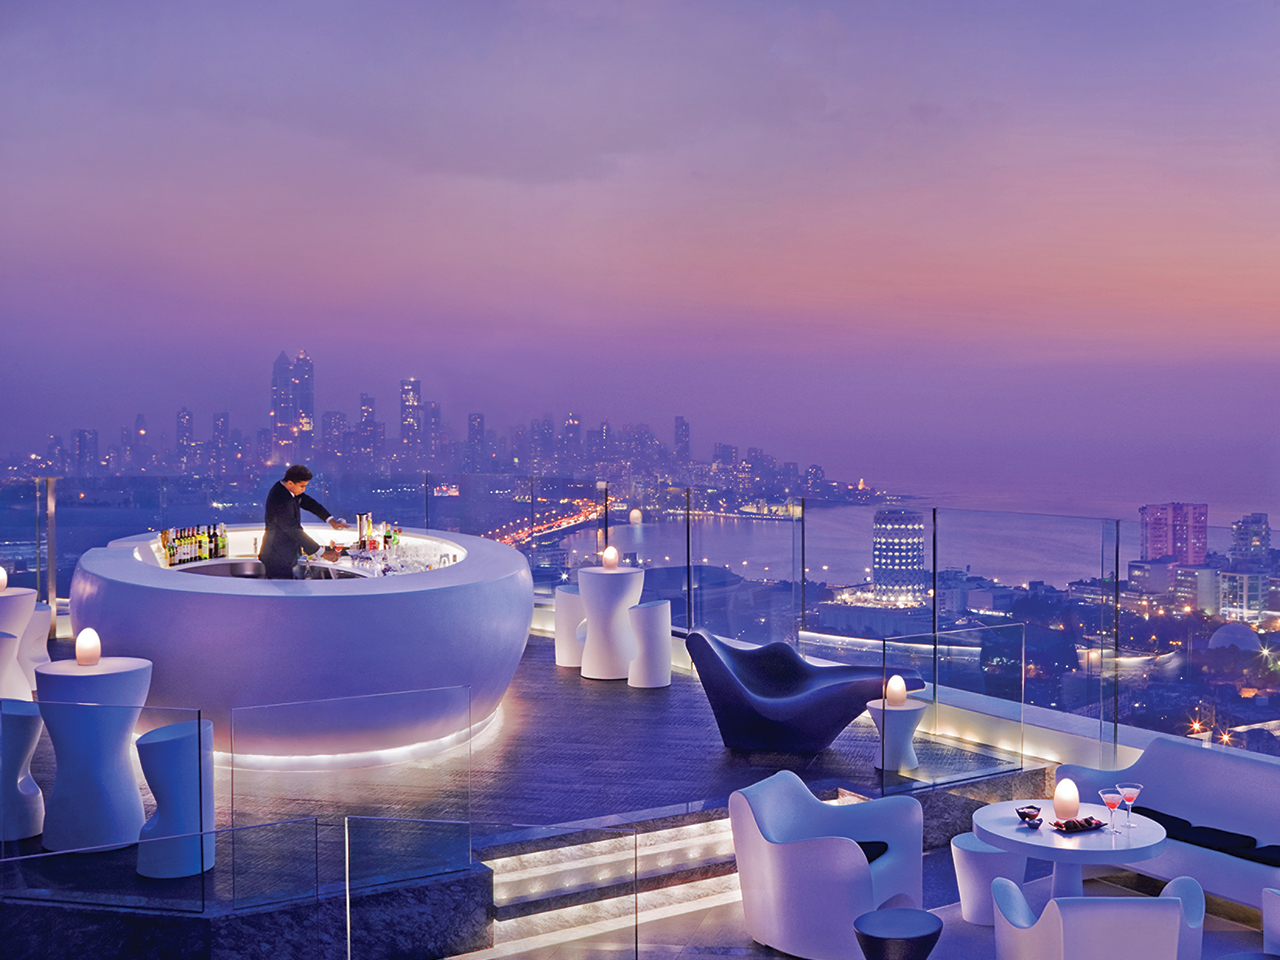 Drink in the View at These Amazing Rooftop Bars